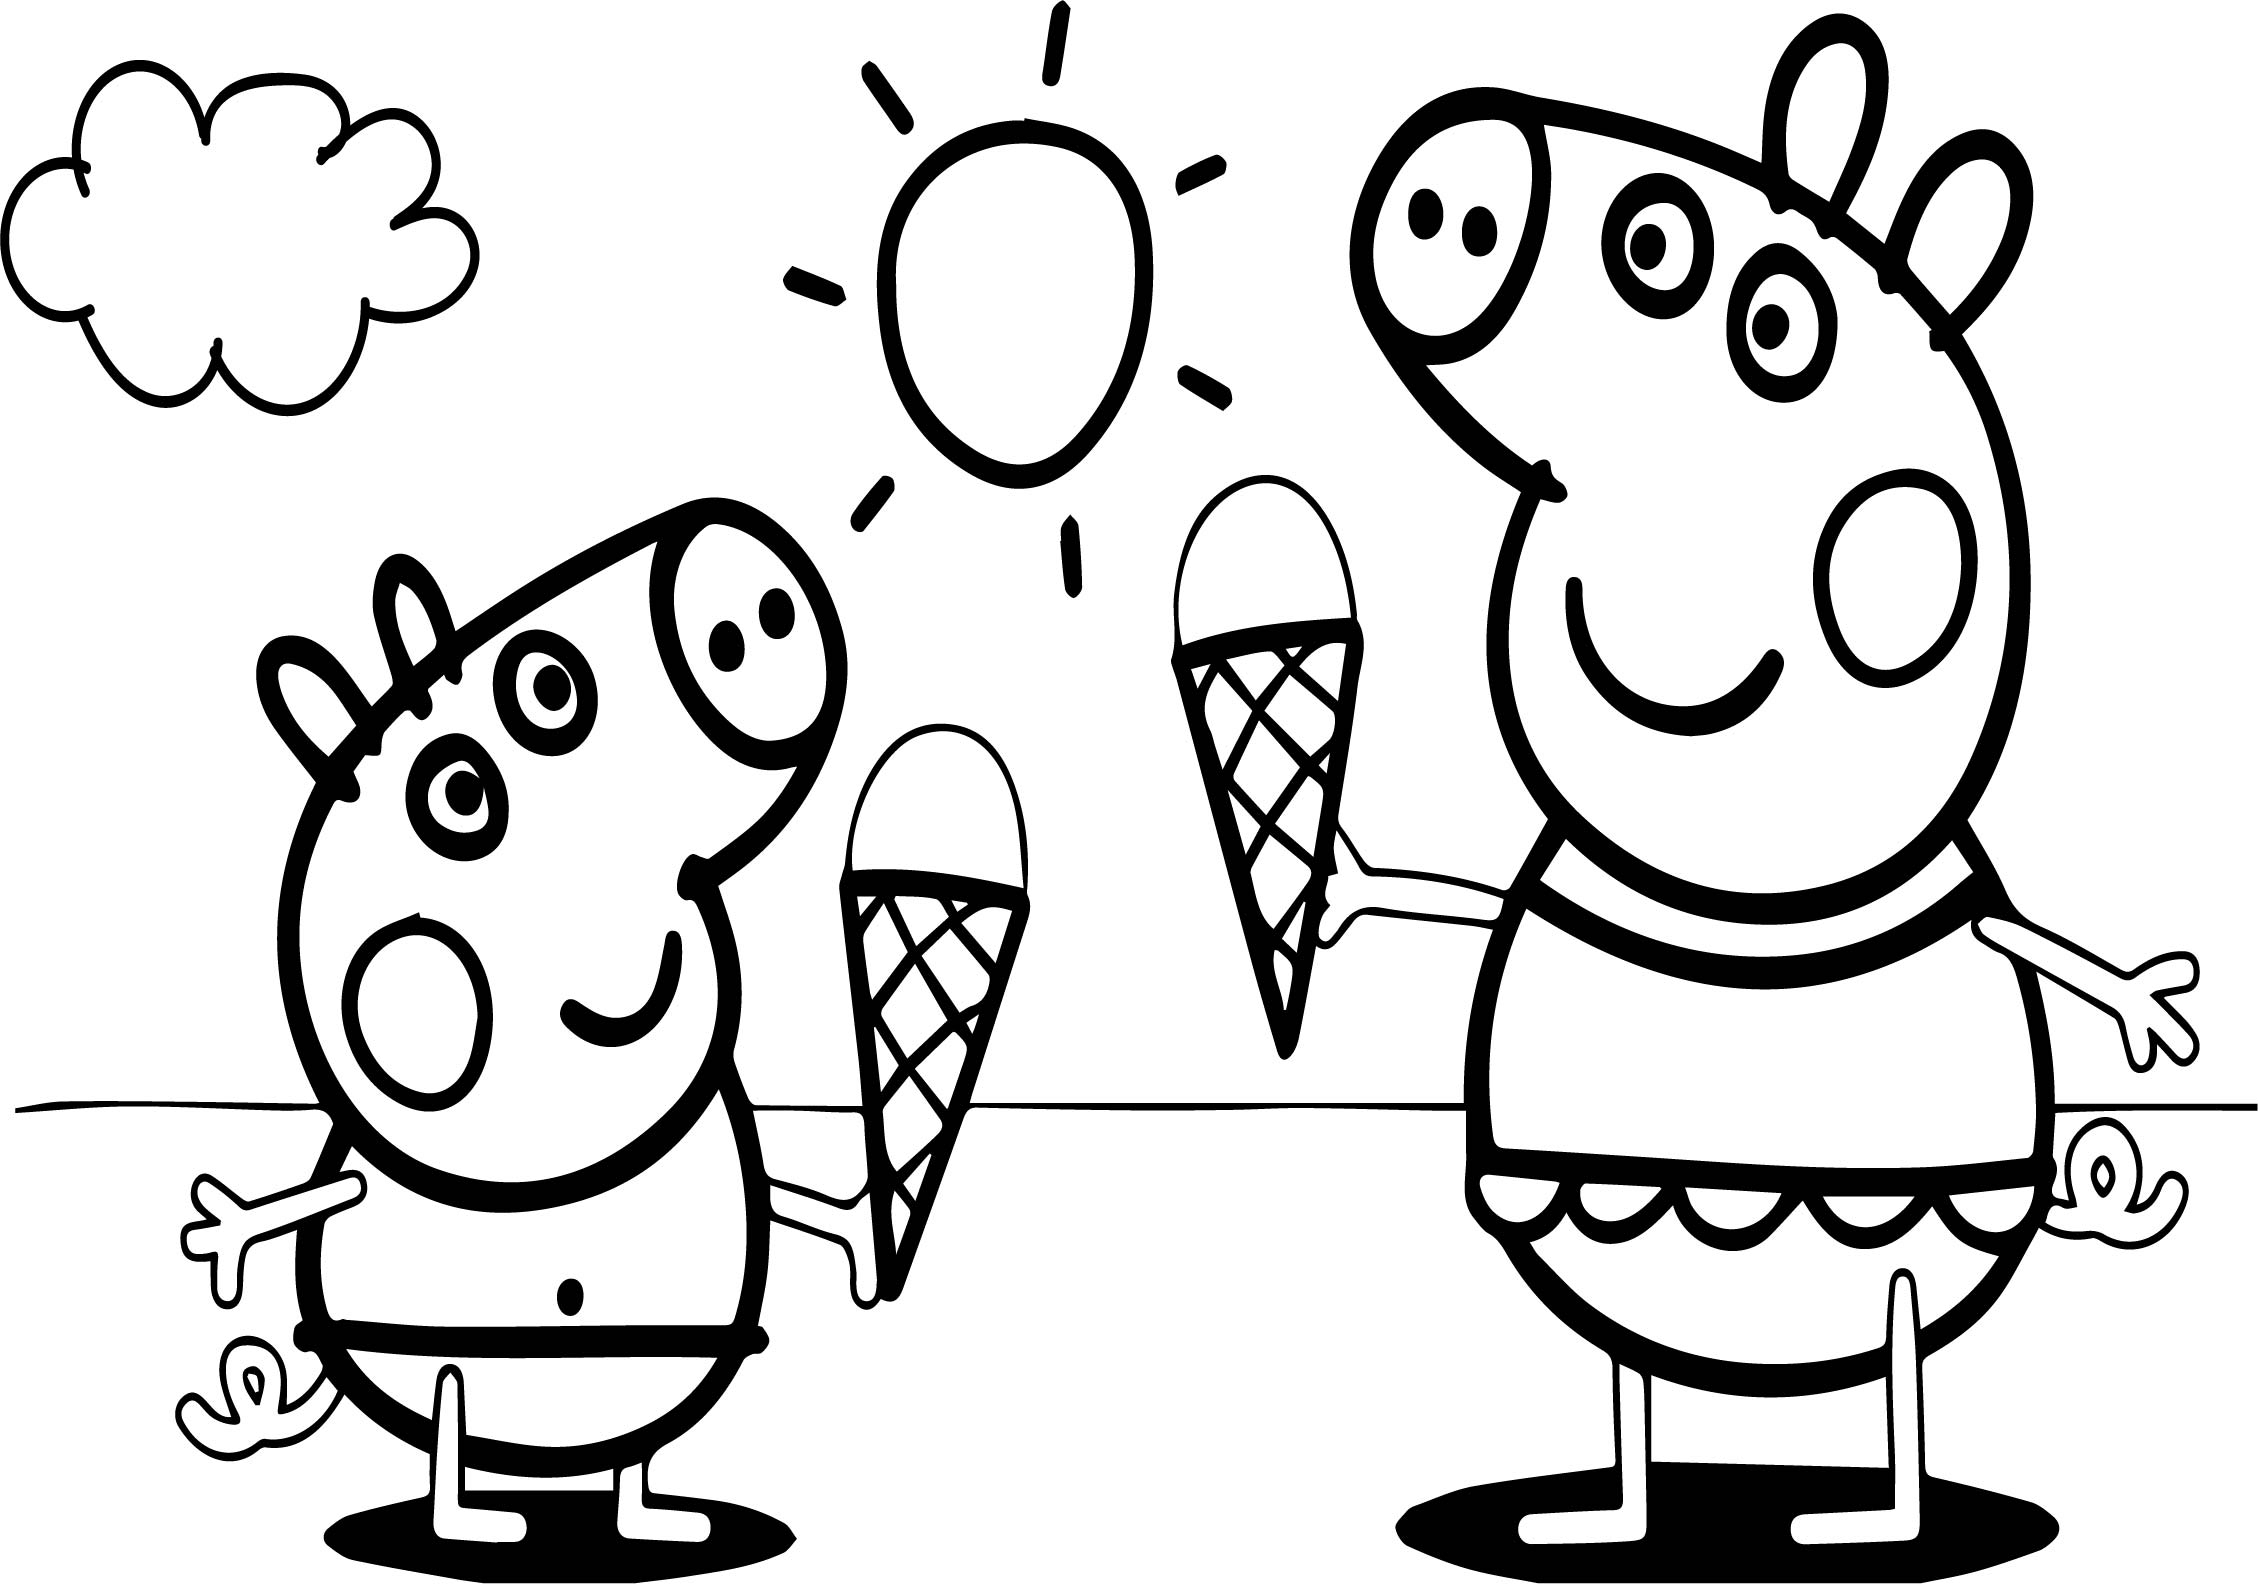 peppa pig pictures for colouring peppa pig39s royal family coloring page free printable pictures colouring for pig peppa